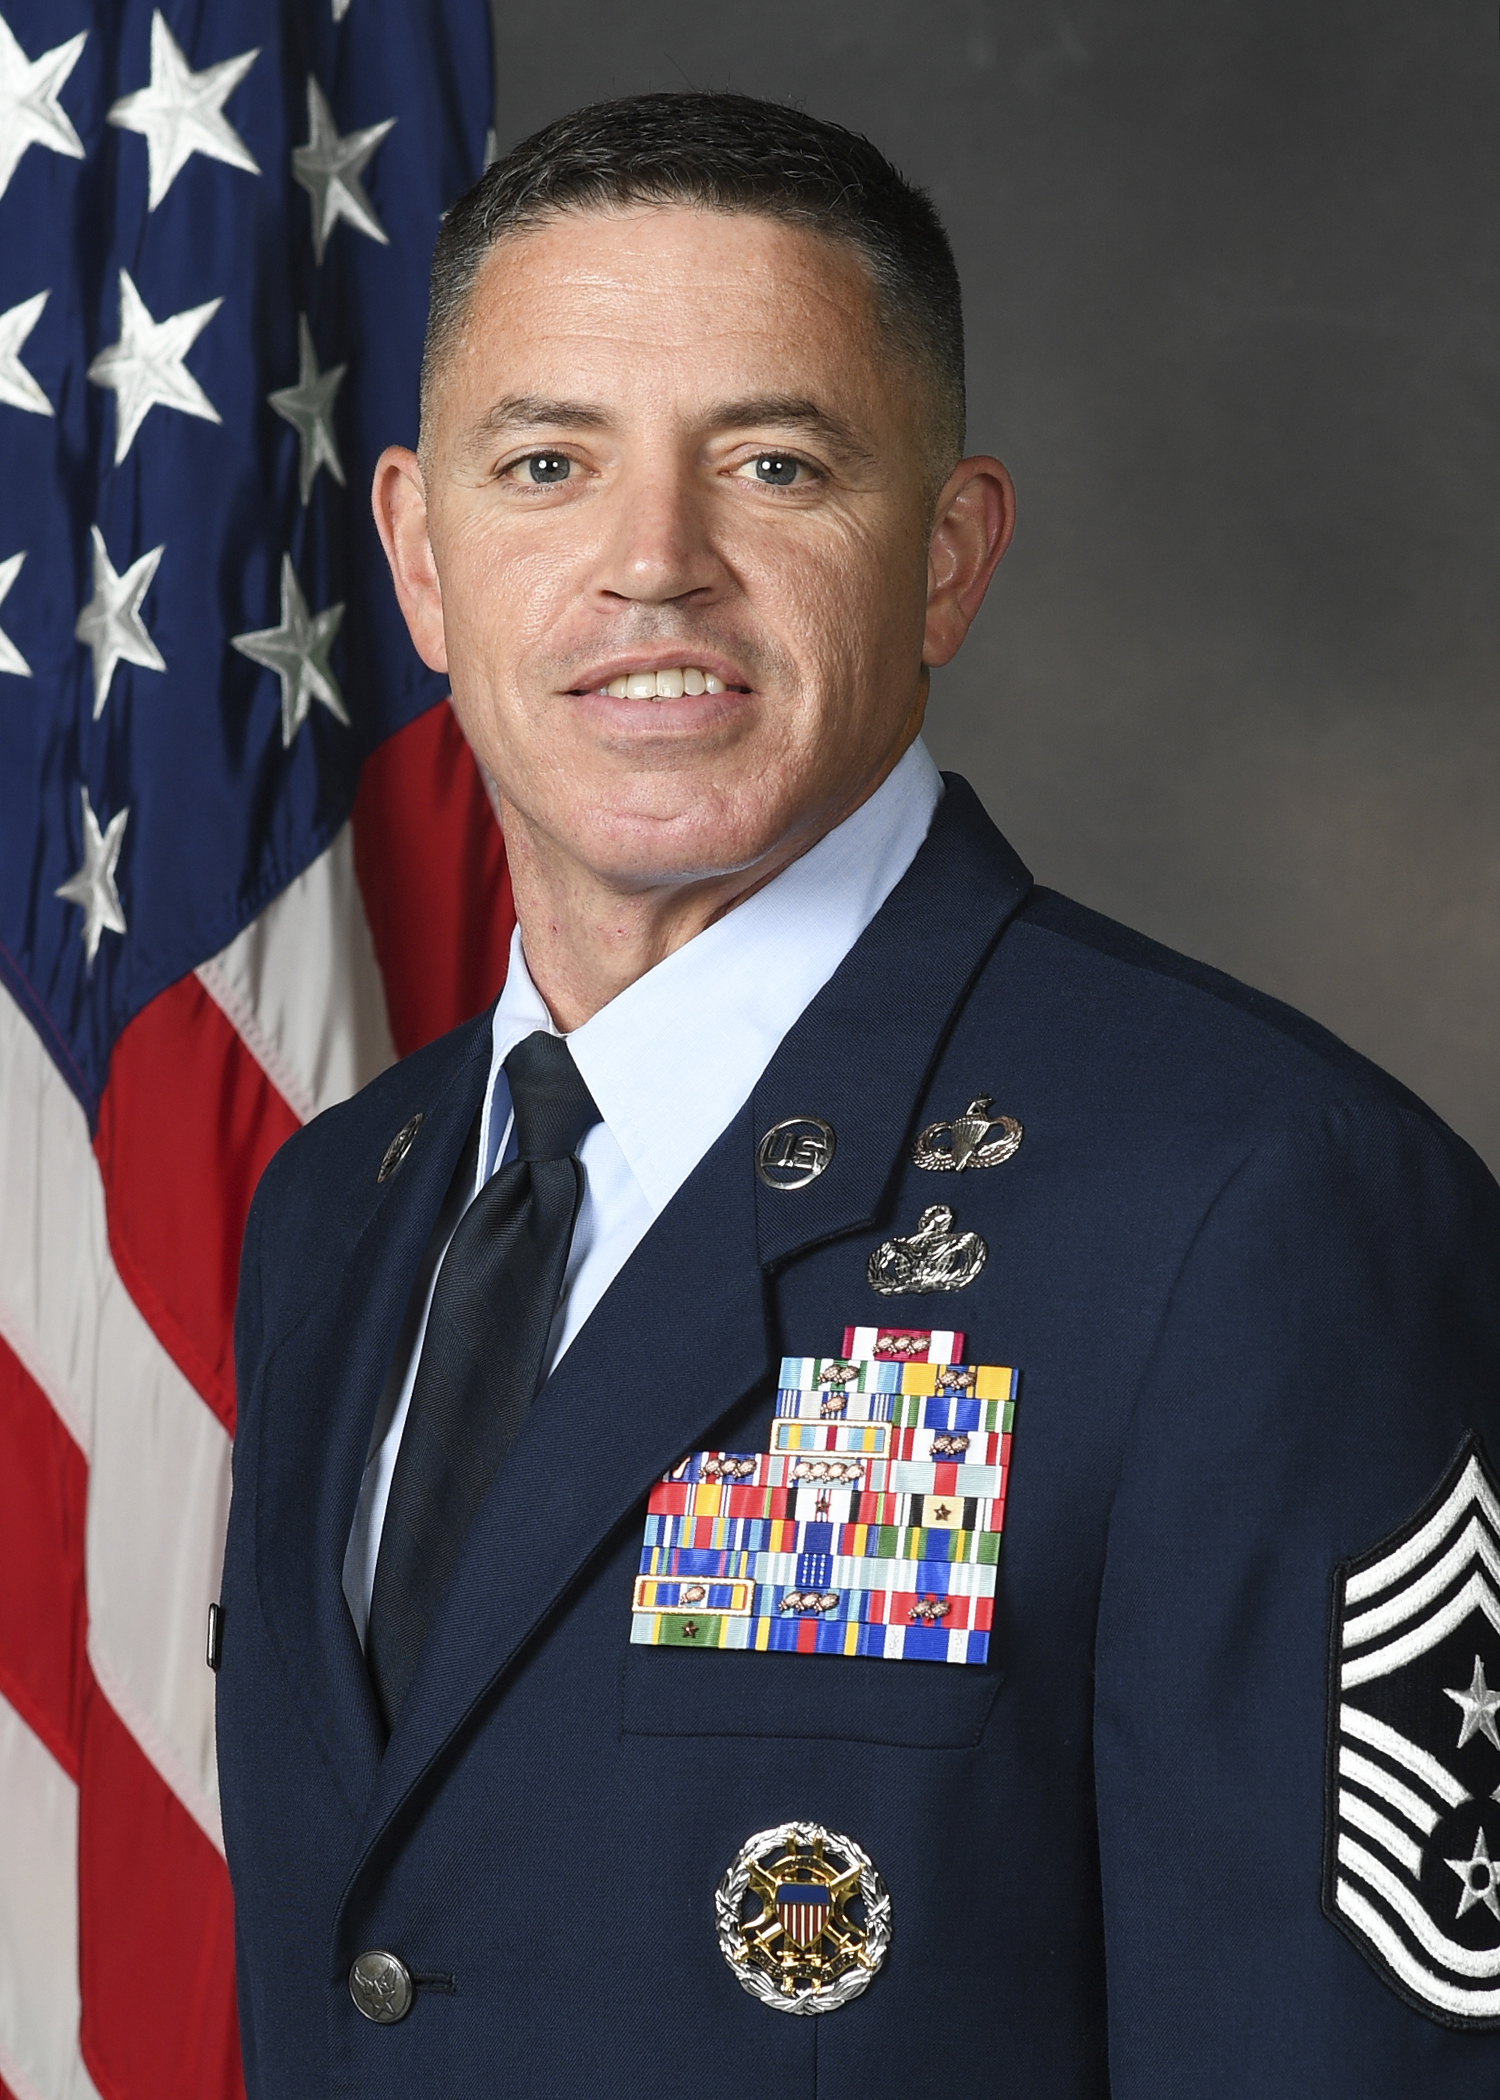 Chief Master Sgt. Jason Q. Shaffer - Command Chief Master Sergeant